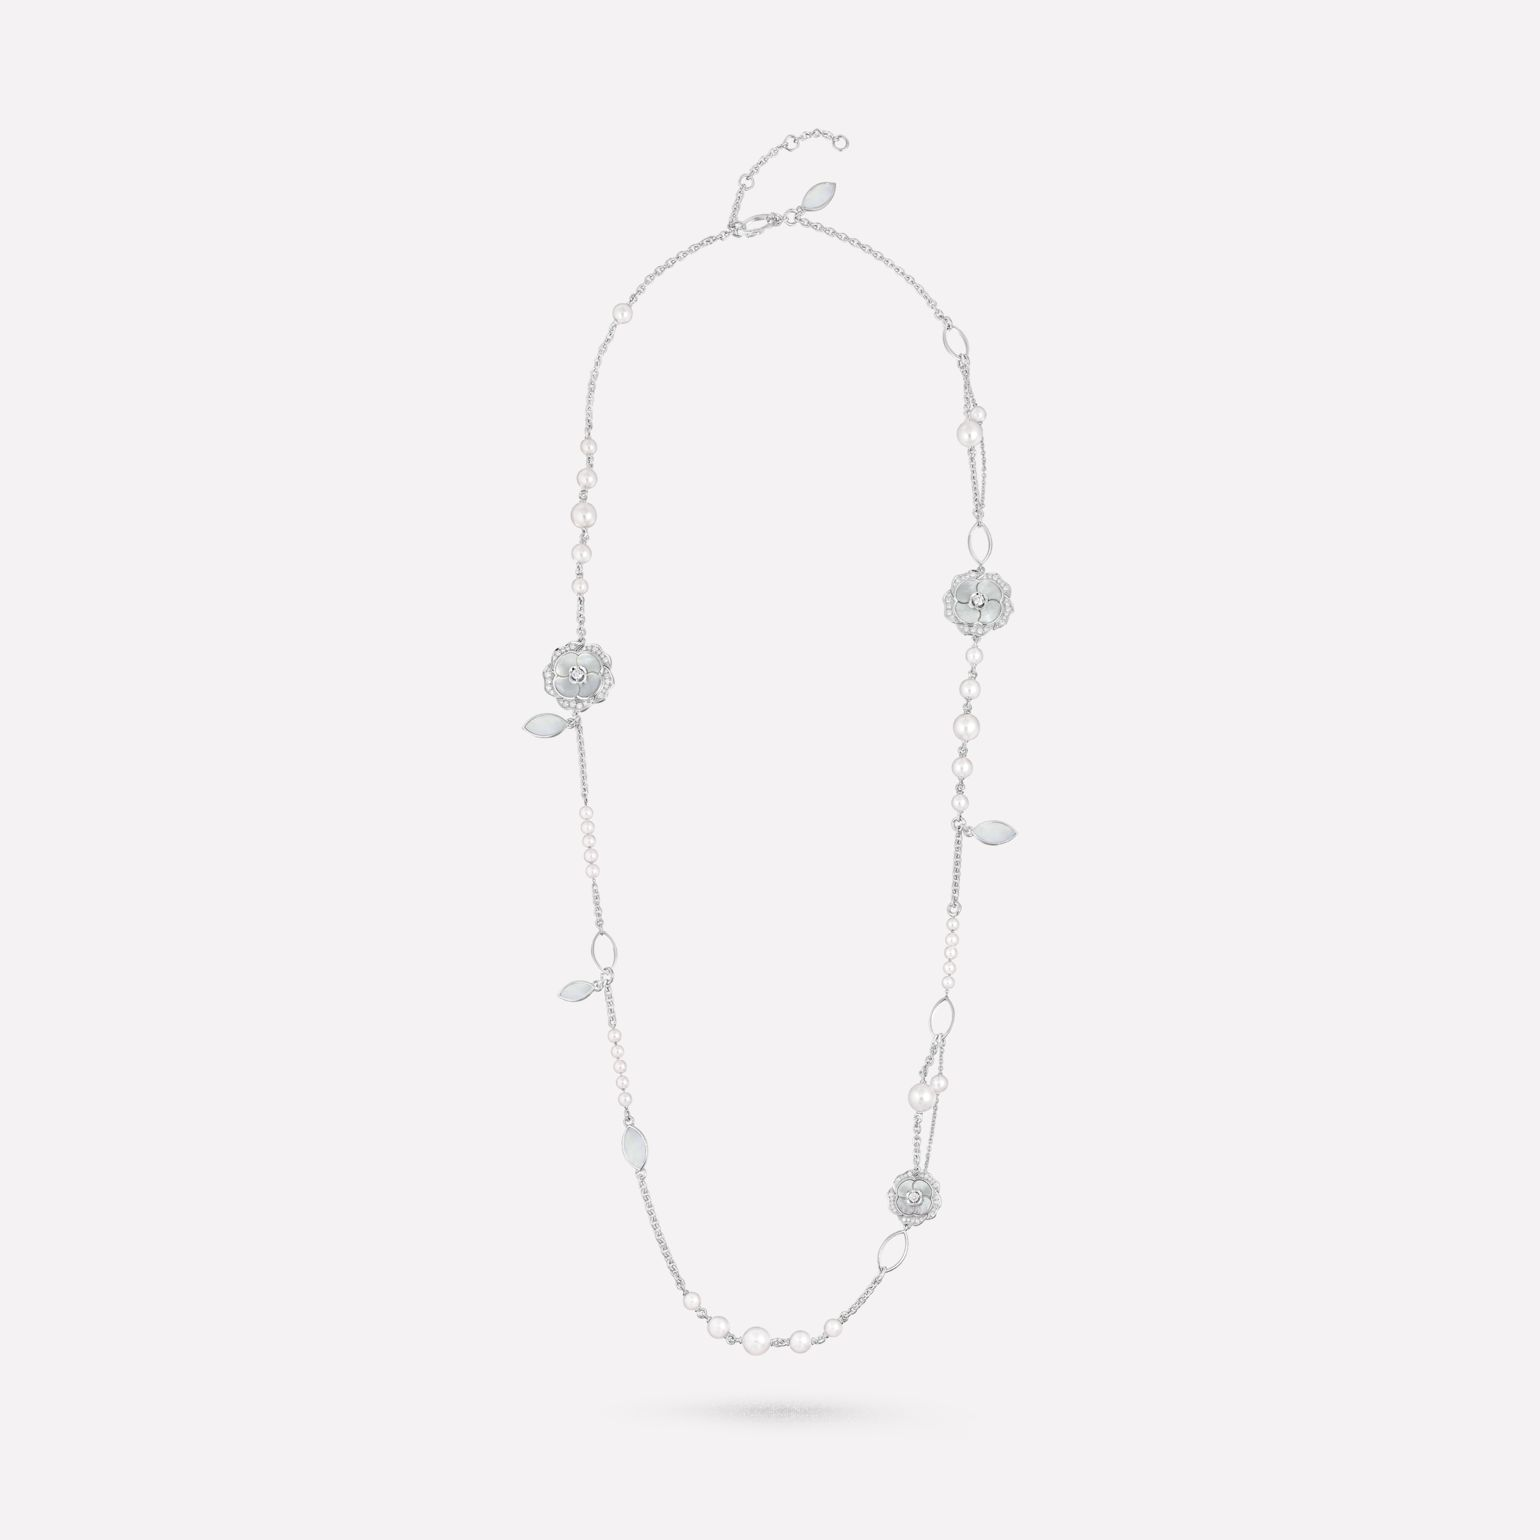 Bouton de Camélia long necklace 18K white gold, diamonds, cultured pearls, white mother-of-pearl